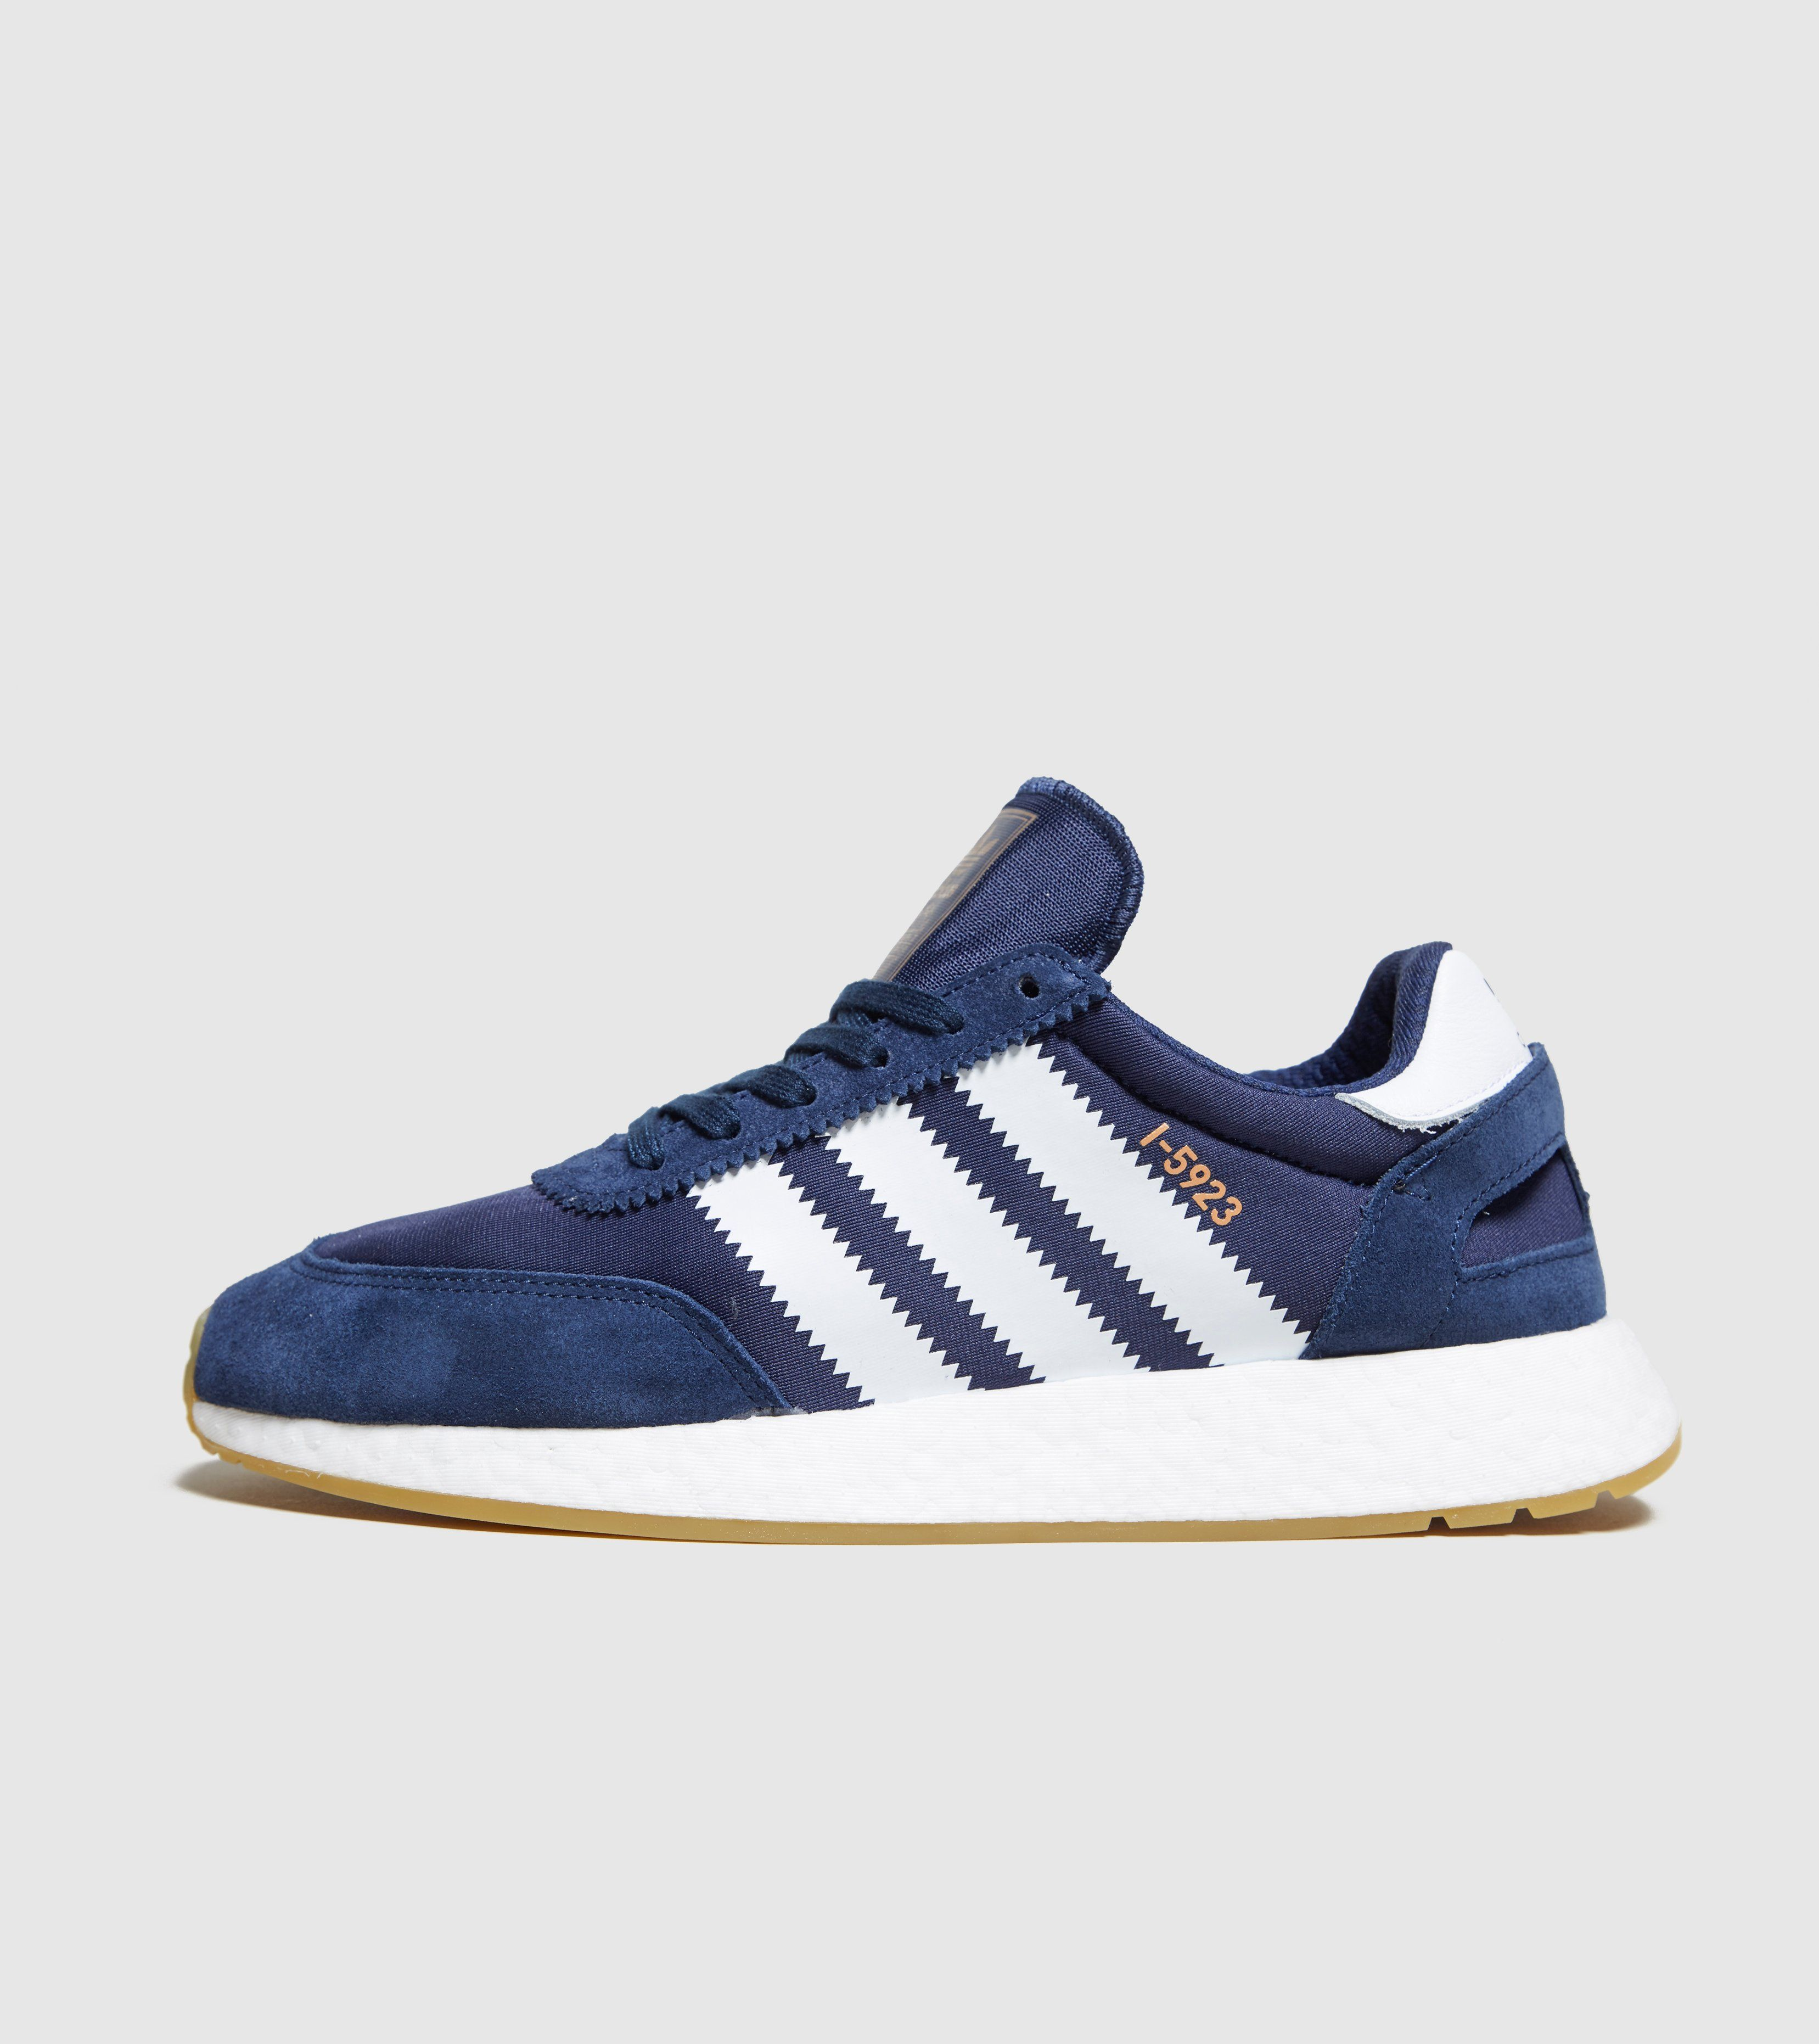 Adidas originals i 5923 boost size for Adidas originals unicenter